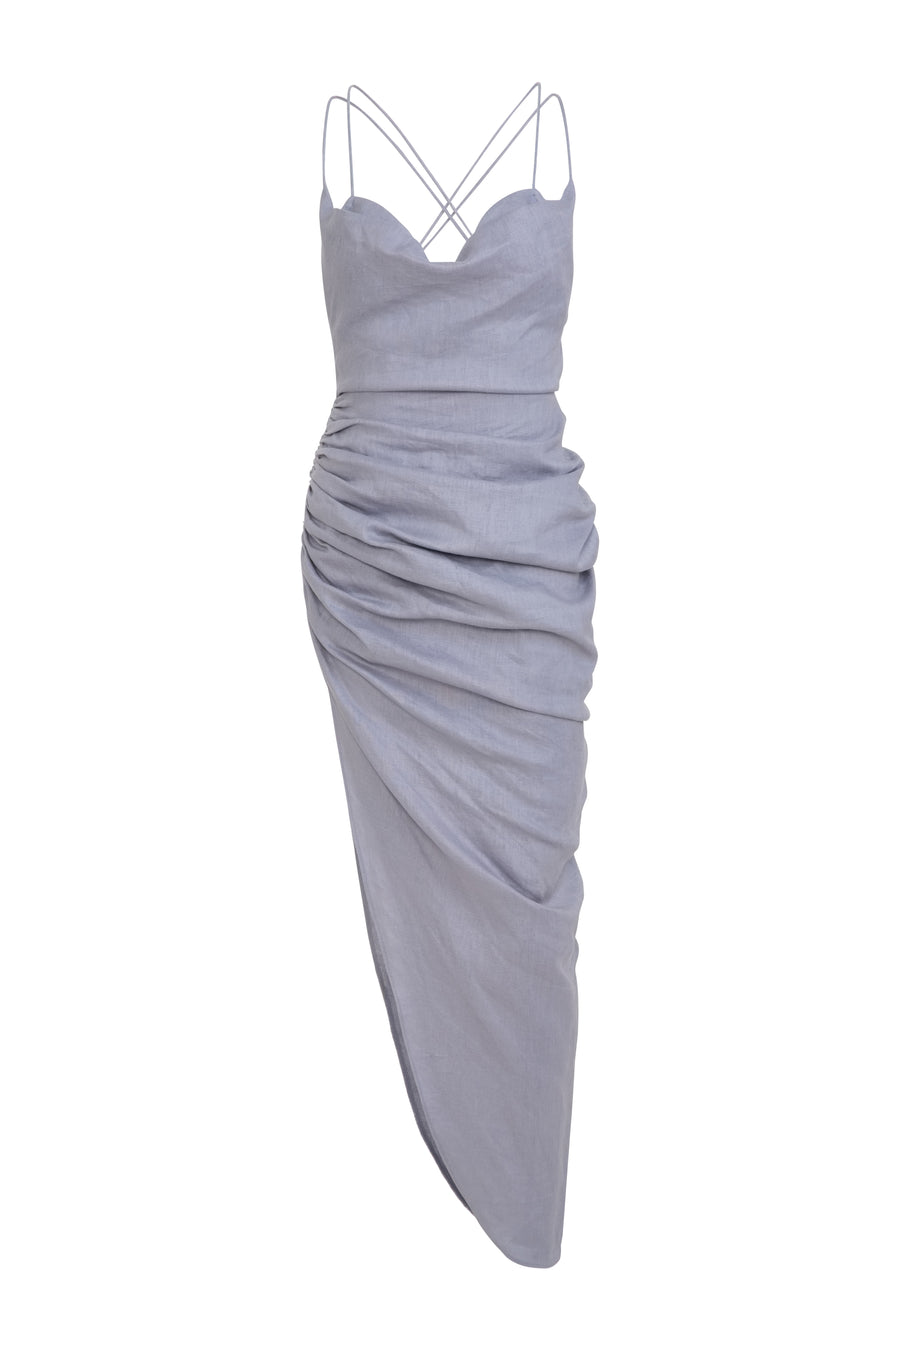 Sleeveless Cowl Neck Draped Dress with Bralette SS21